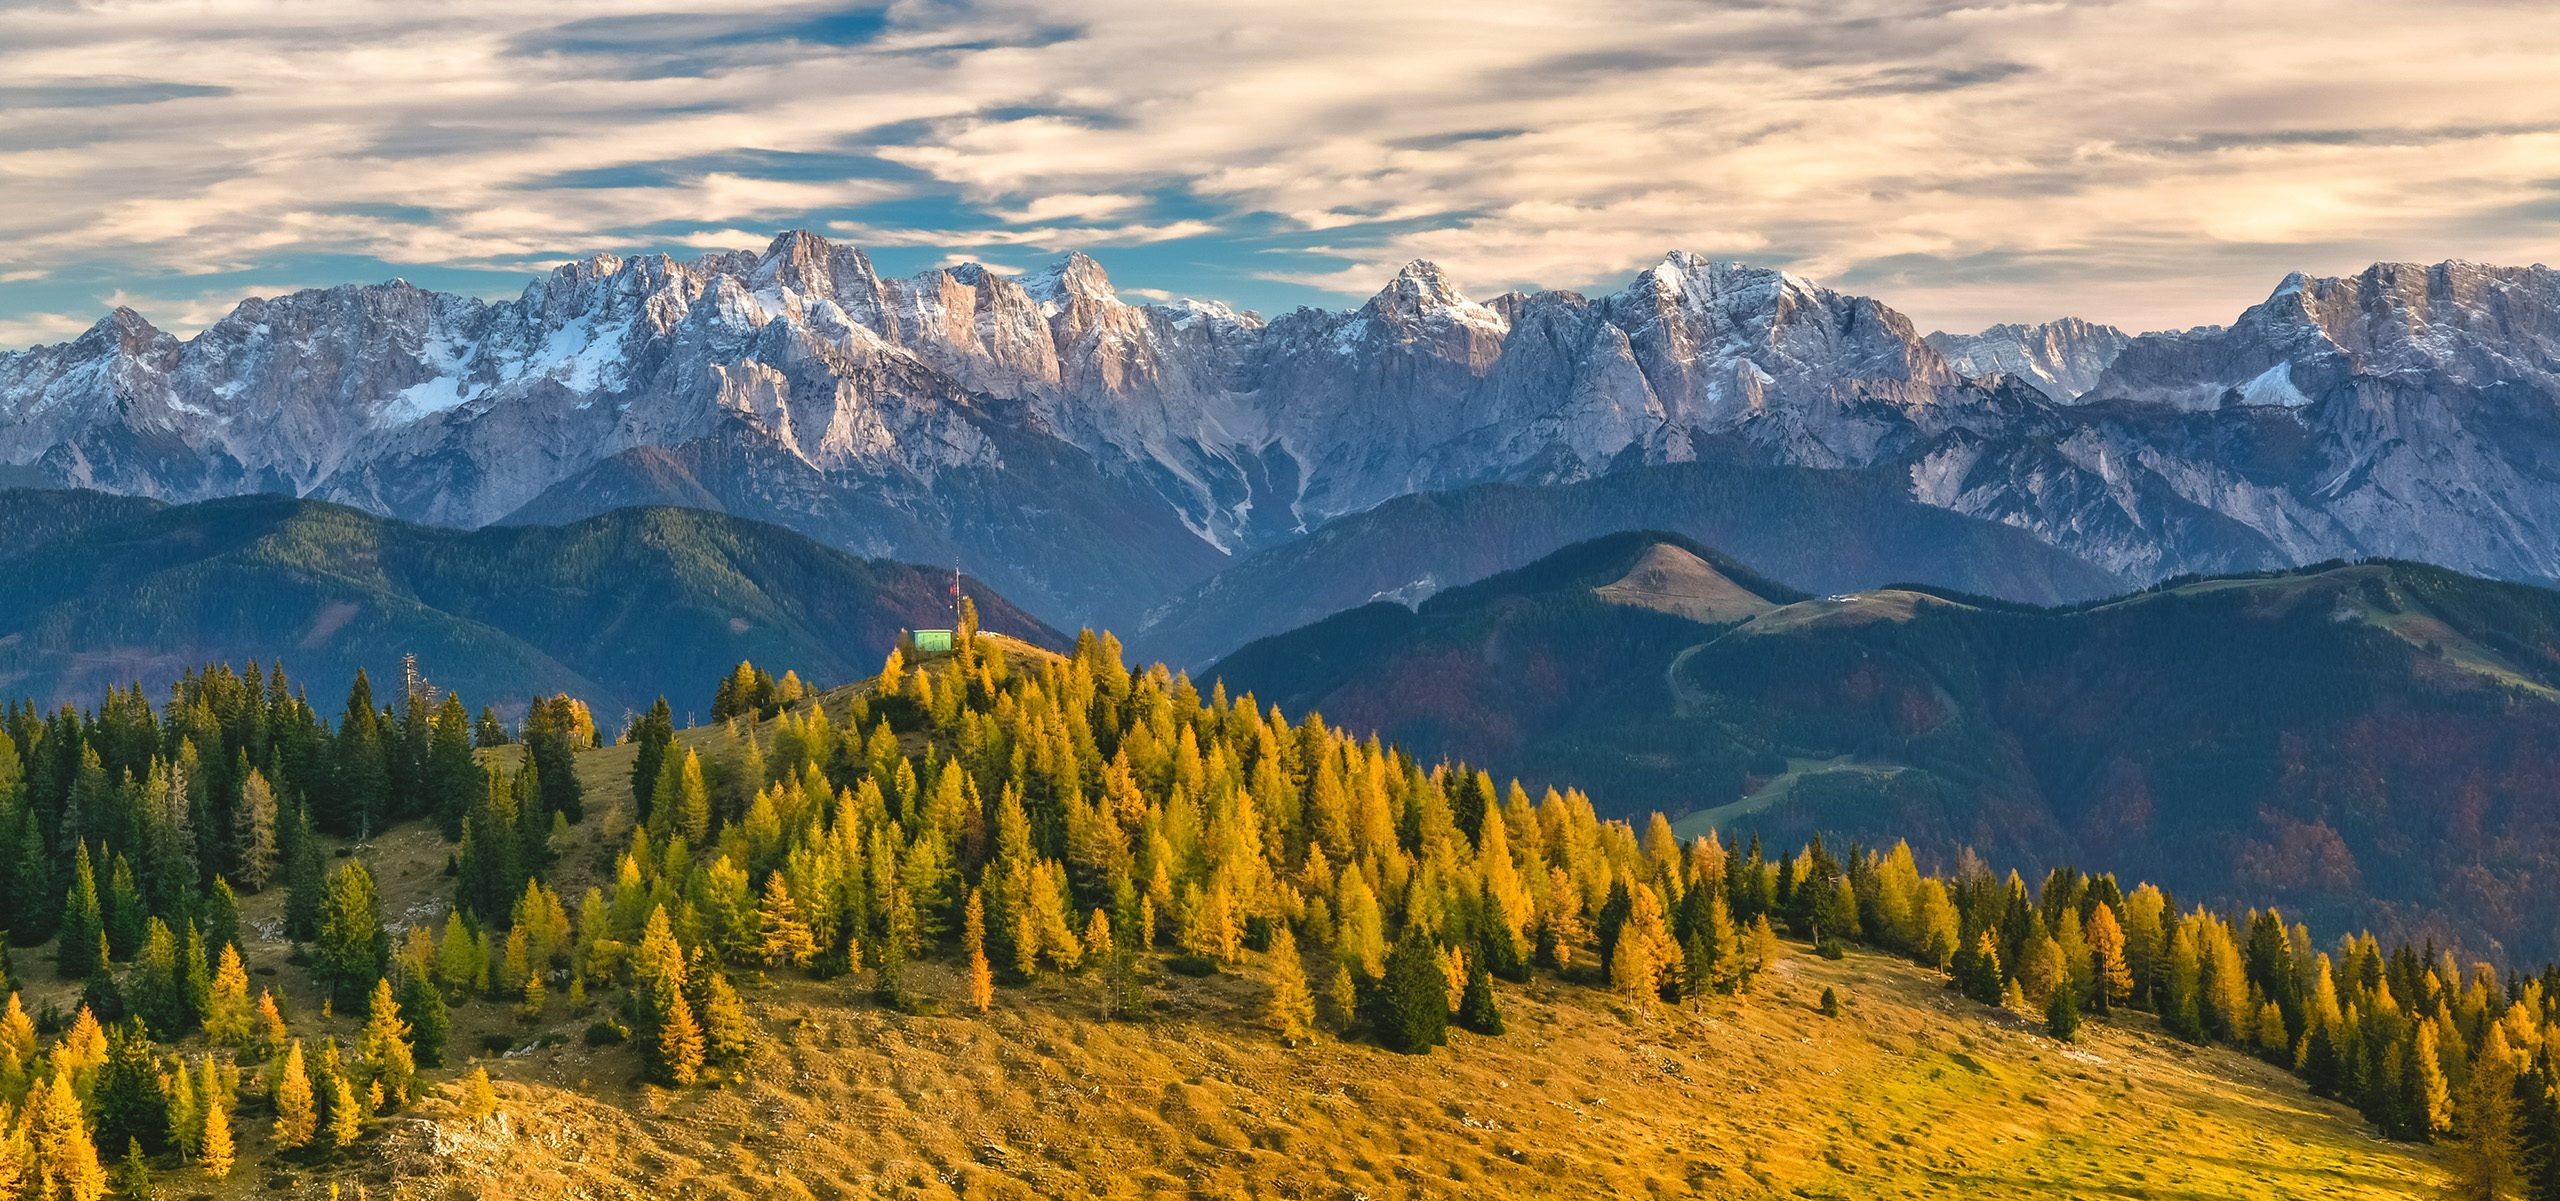 Austria-Alps Mountains